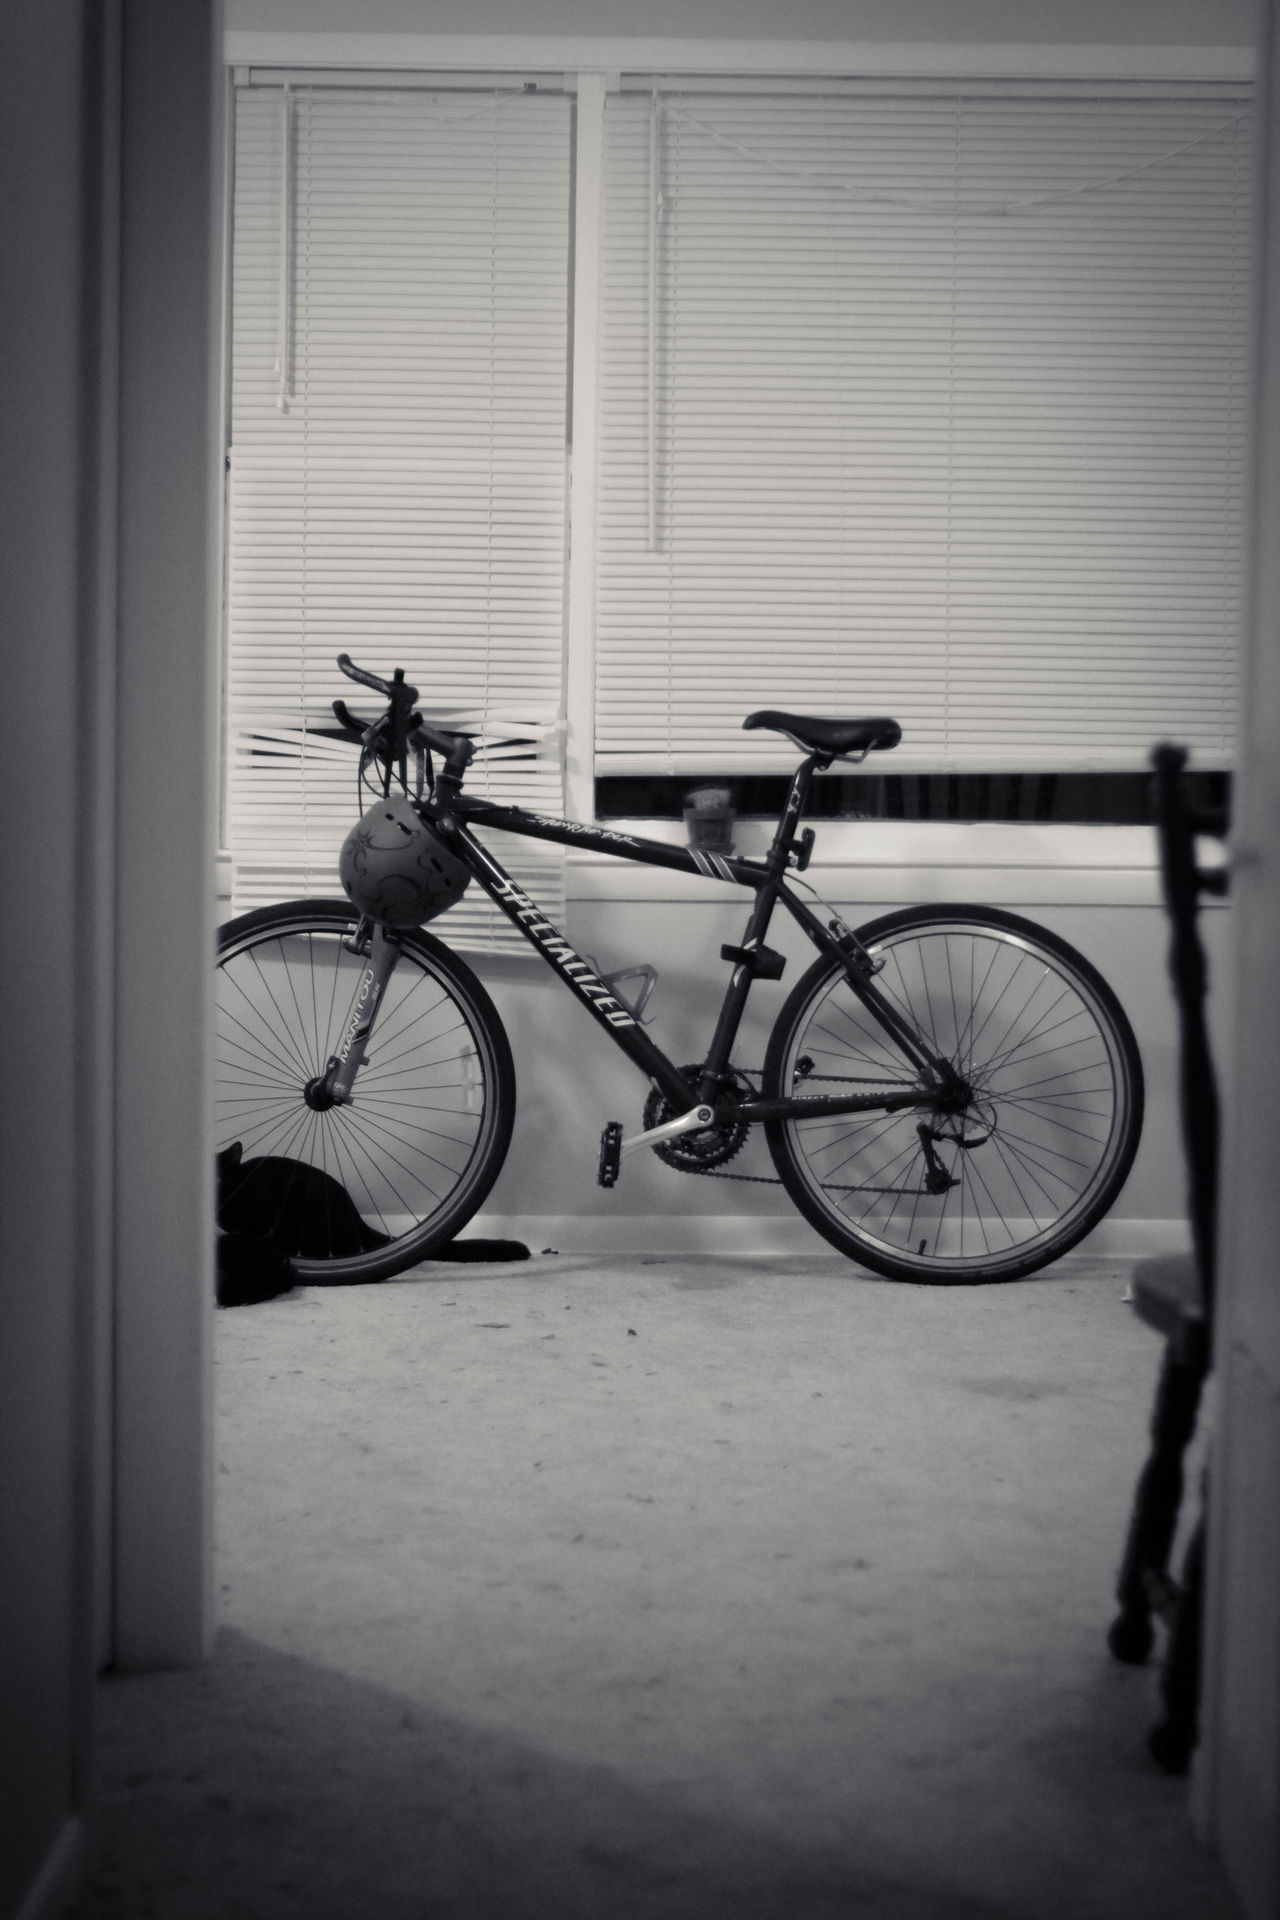 Bicycle Bicycle In The House Bike Bike Helmet Black & White Black And White Blackandwhite Blackandwhite Photography Cycle Helmet In The Home IN THE House Leaning No People Parked Stationary Still Life The OO Mission Still Life Photography Showcase June Eyeemphoto Monochrome Photography